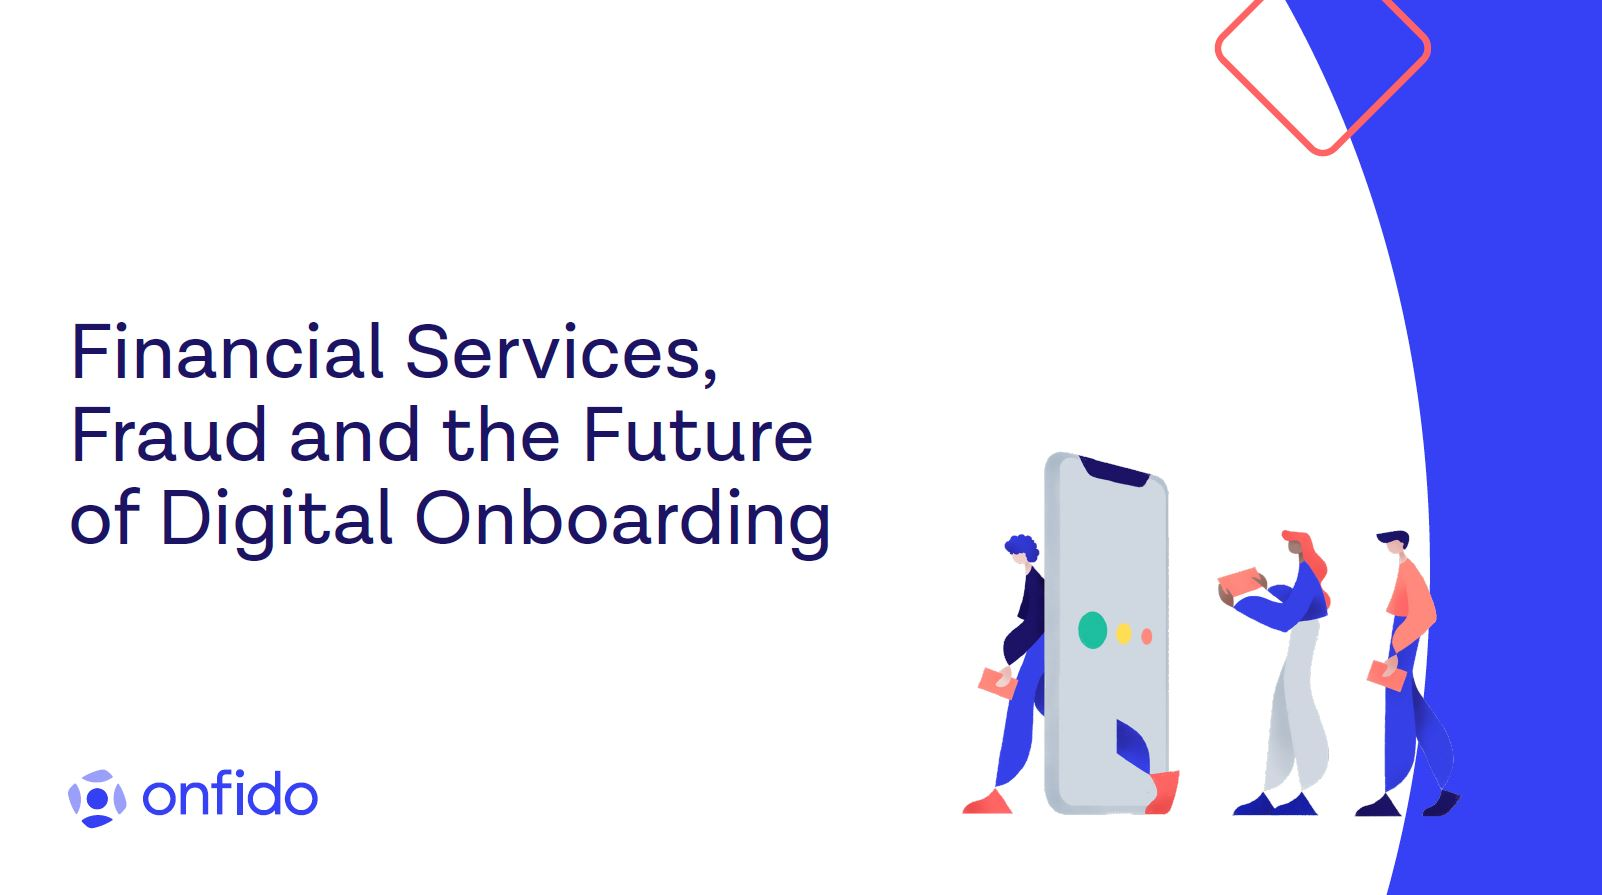 Financial Services, Fraud, and the Future of Digital Onboarding